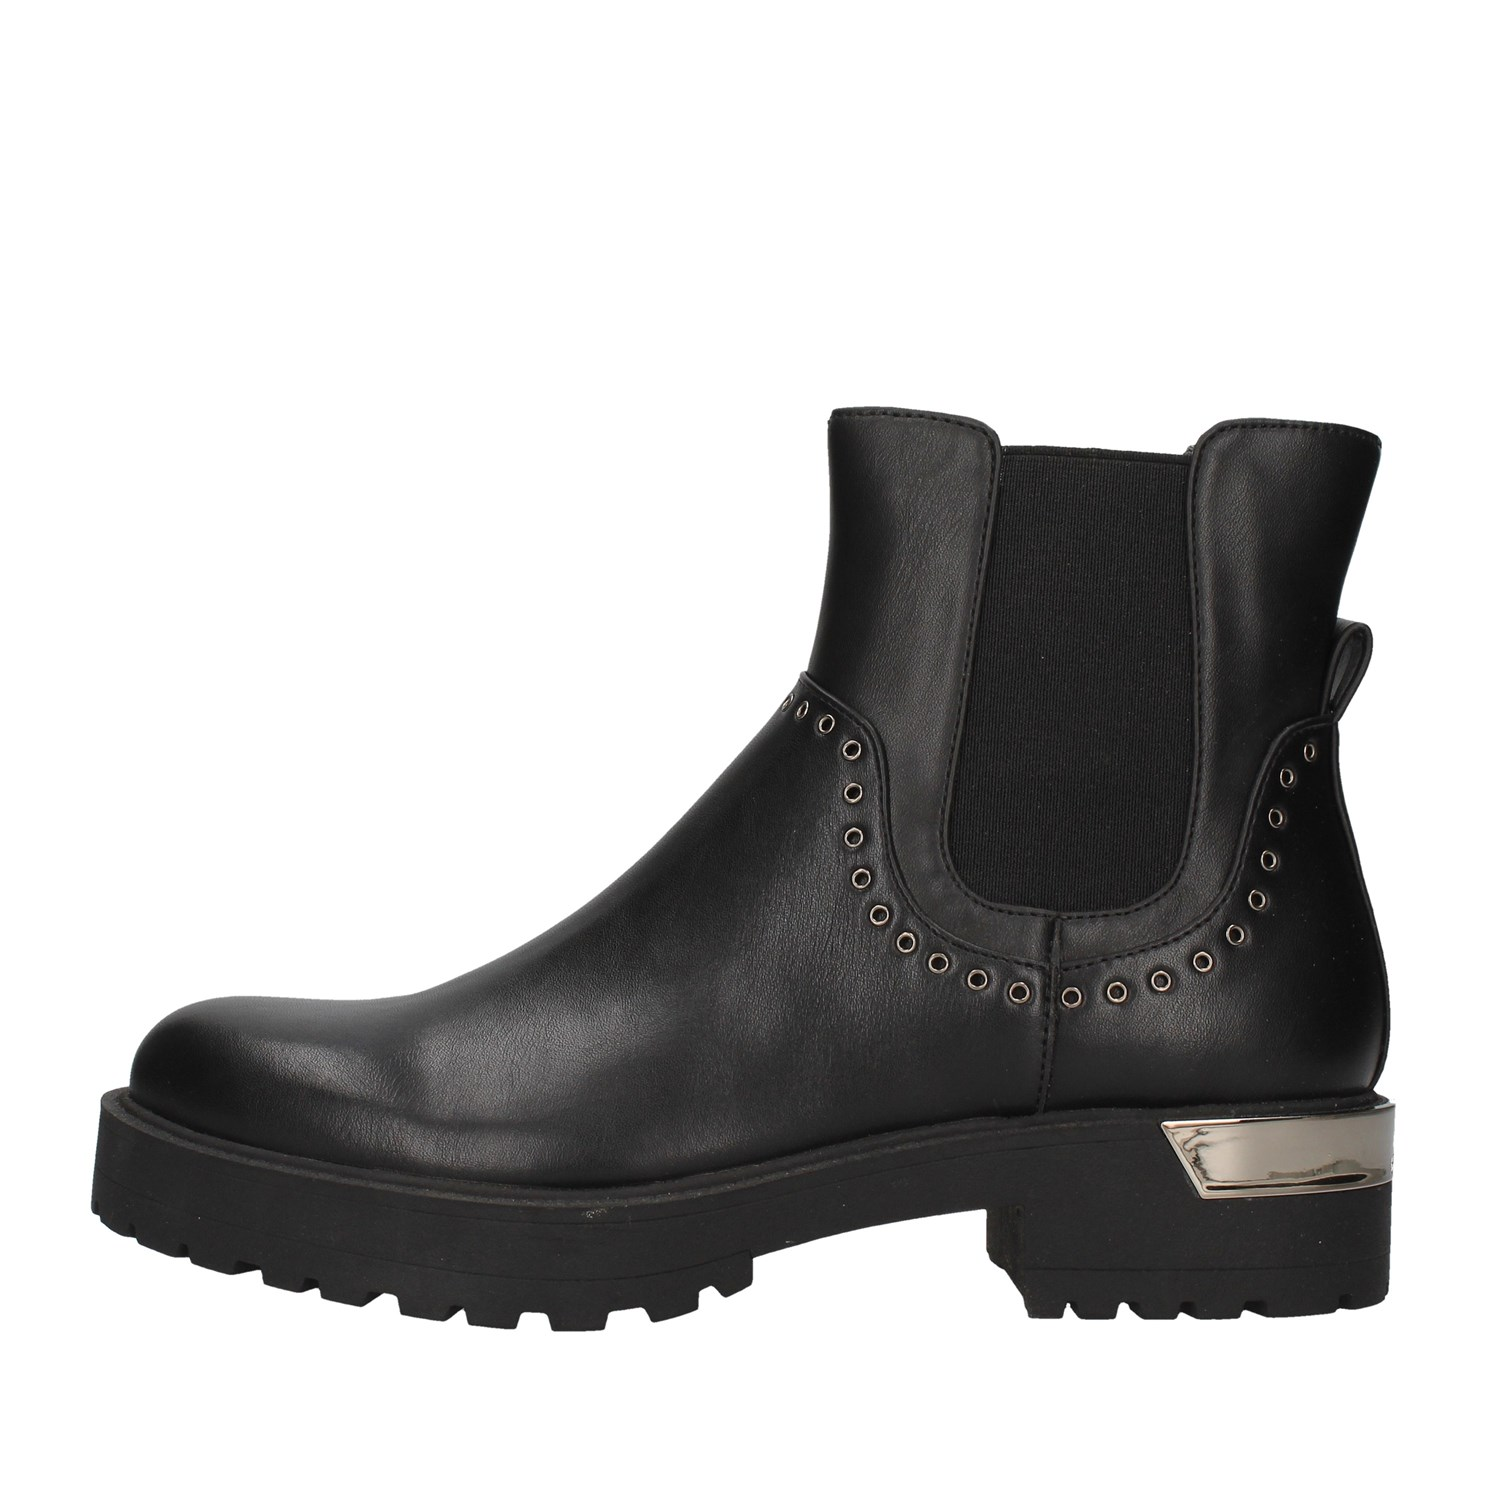 Gattinoni Roma Shoes Woman boots BLACK PINJN0903WC